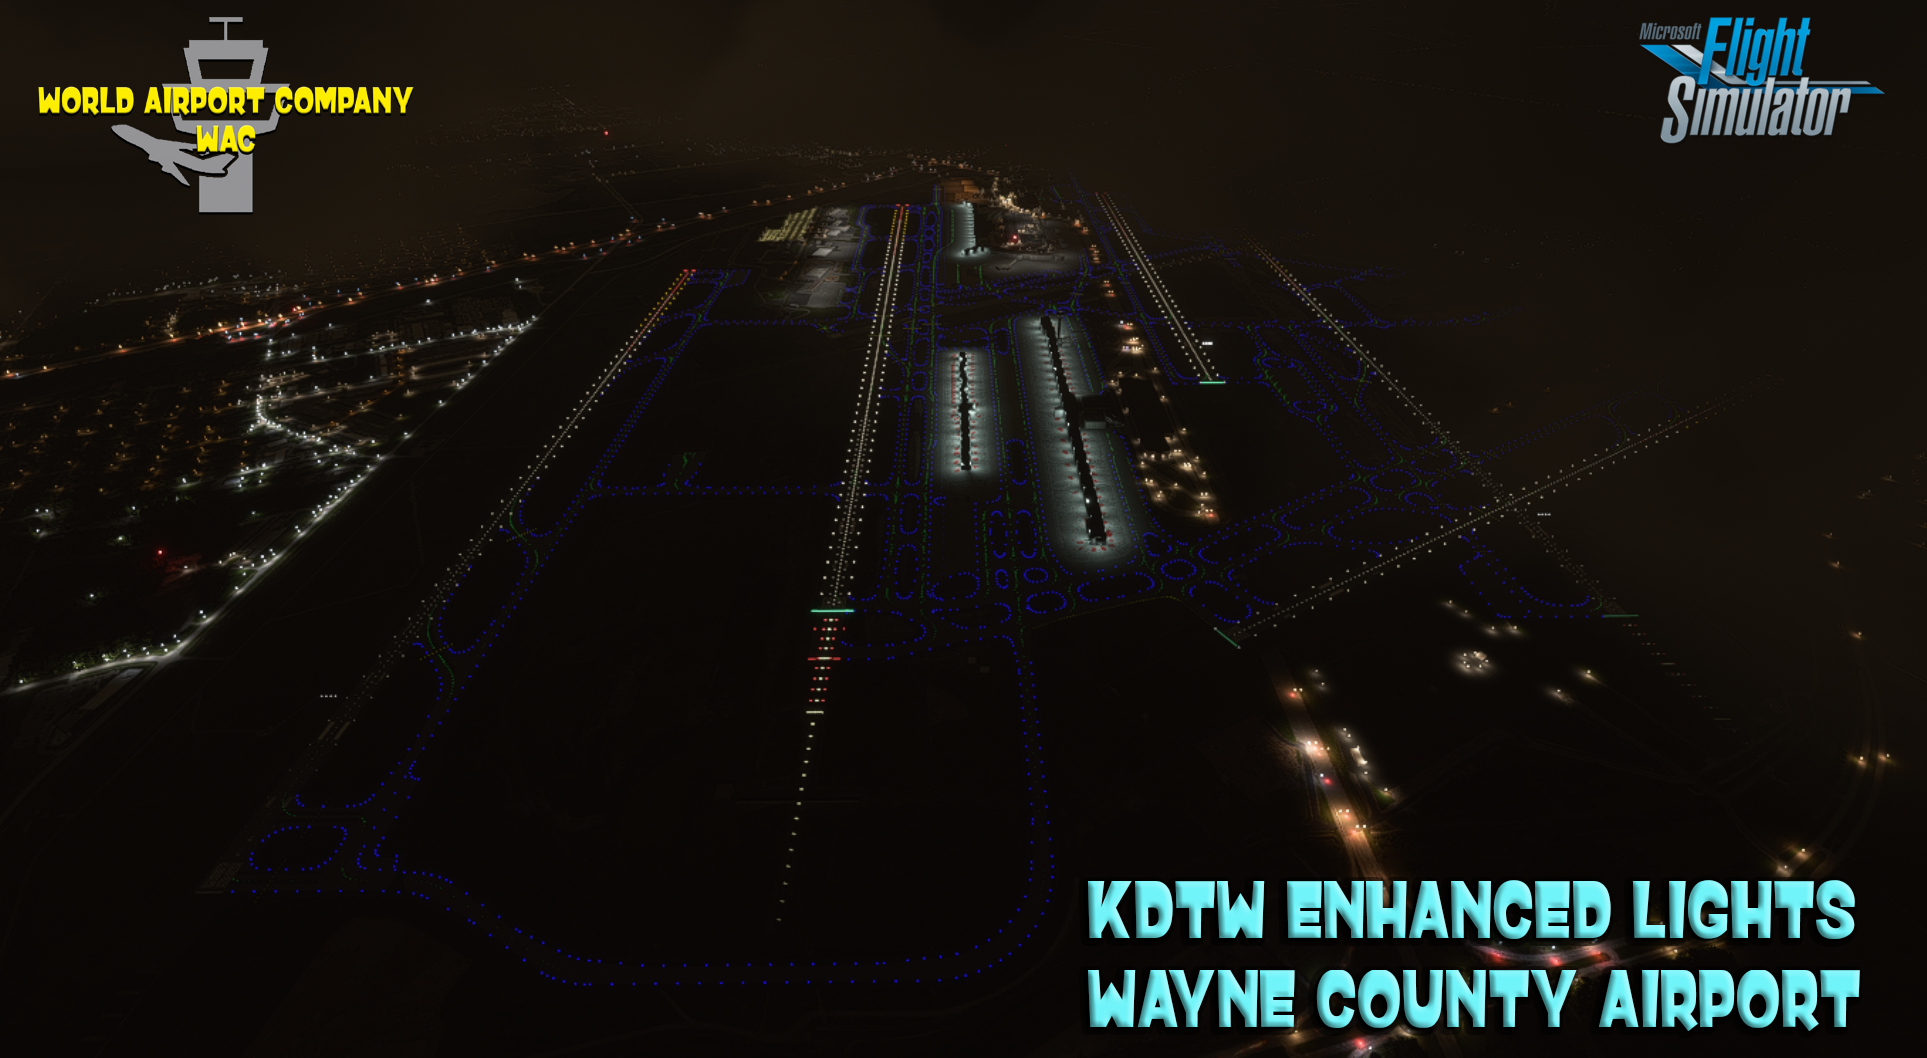 WORLD AIRPORT COMPANY - KDTW  DETROIT METROPOLITAN WAYNE COUNTY AIRPORT LIGHTS MSFS